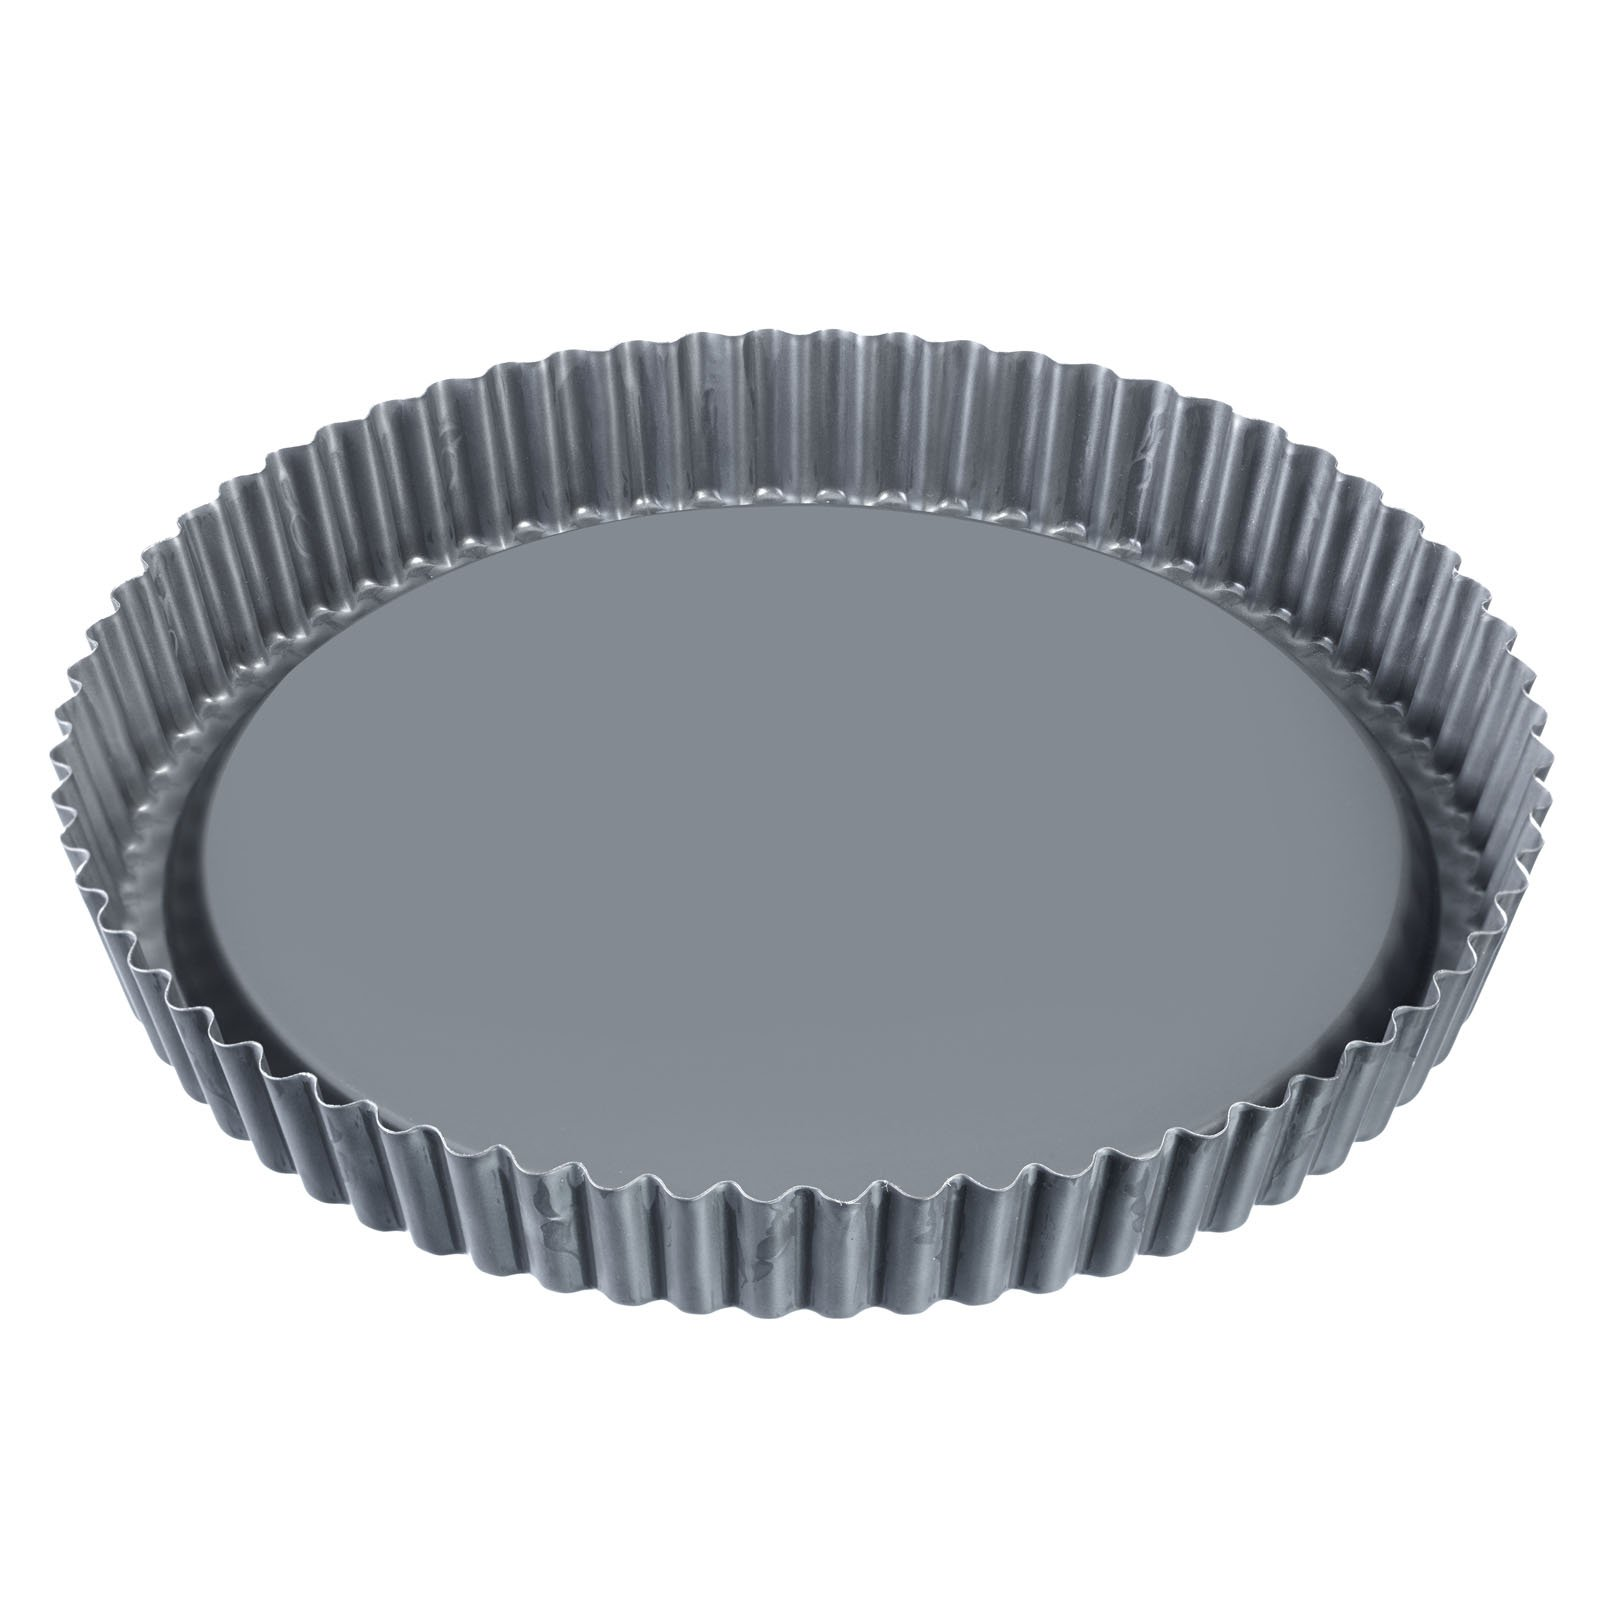 Westmark 33942260 Fruit Tart Tin Nonstick Coated Perfect for Cakes, Pies, Tarts, Flans, 11'', Gray by Westmark